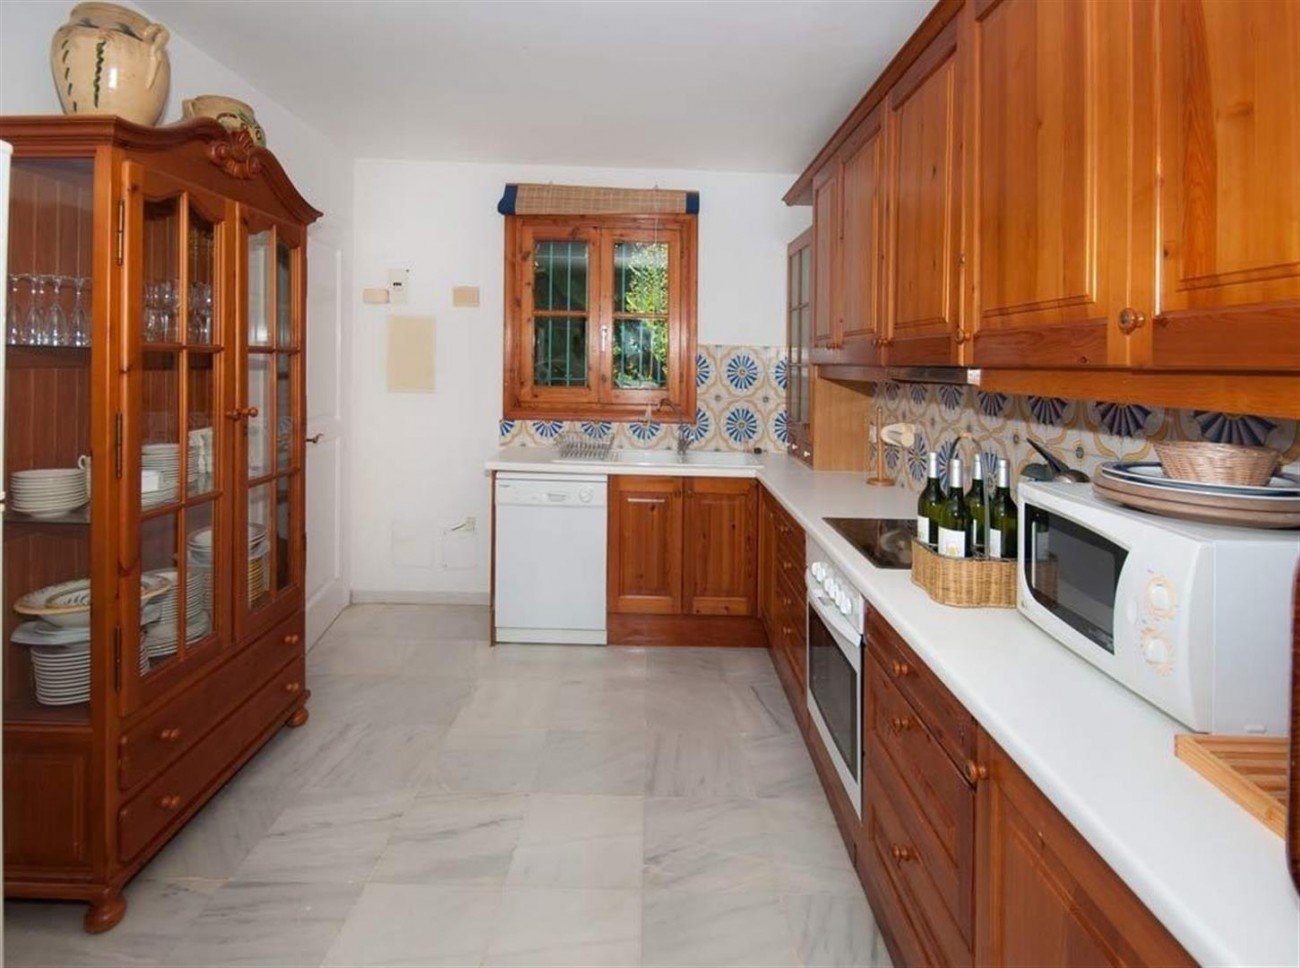 Townhouse for sale Marbella Golden Mile Spain (15) (Large)